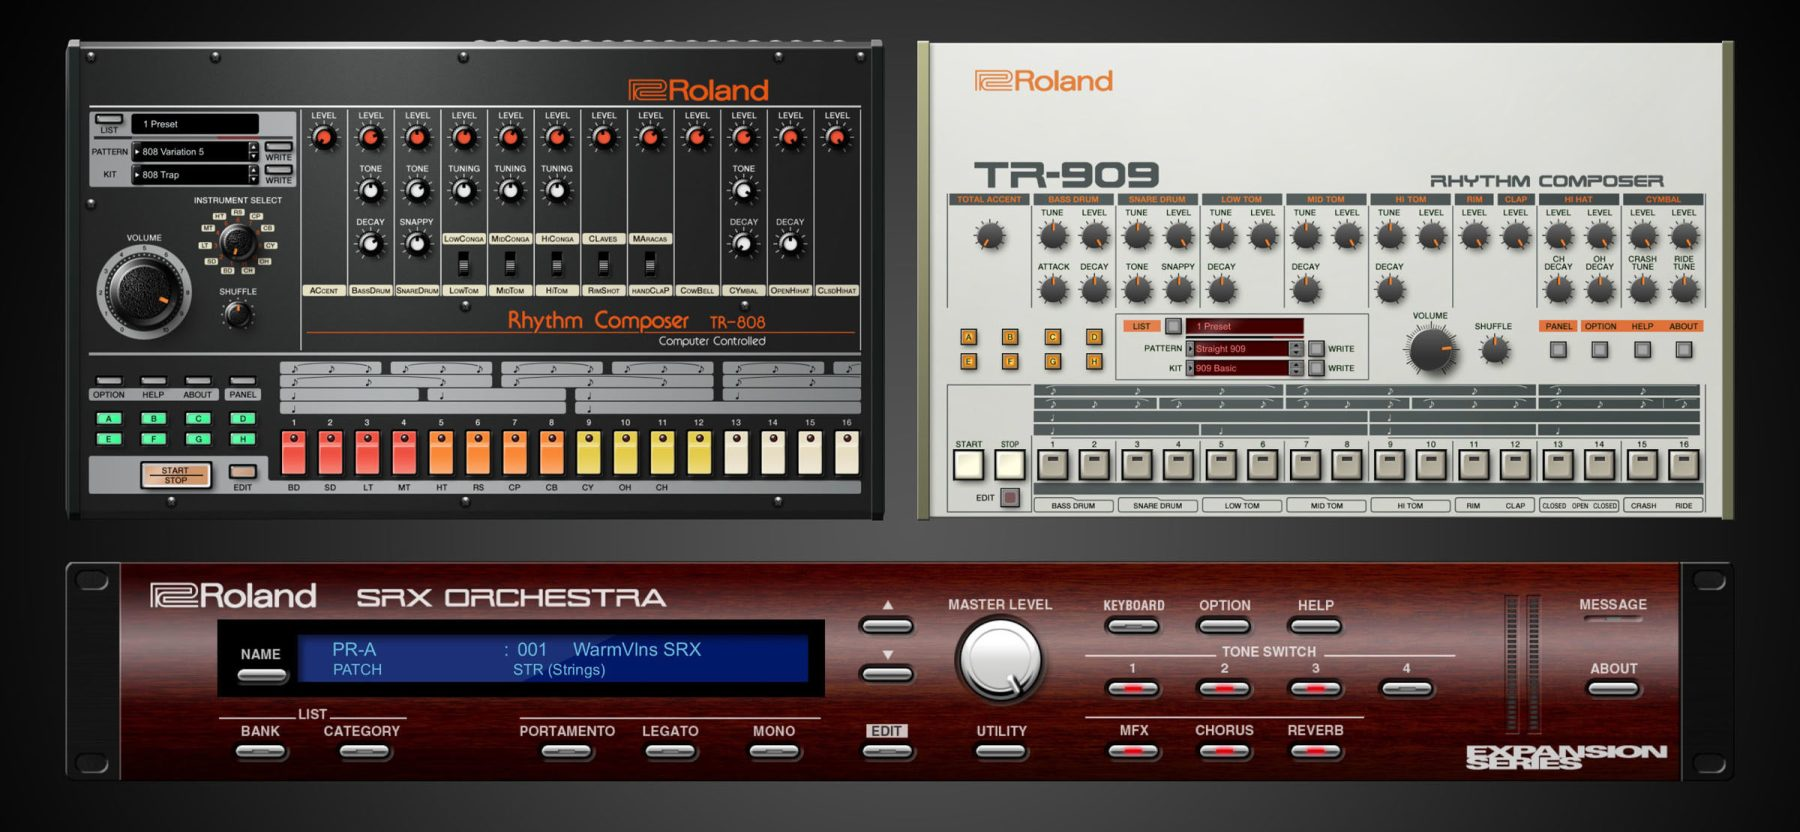 roland releasing official software versions of 808 and 909 drum machines